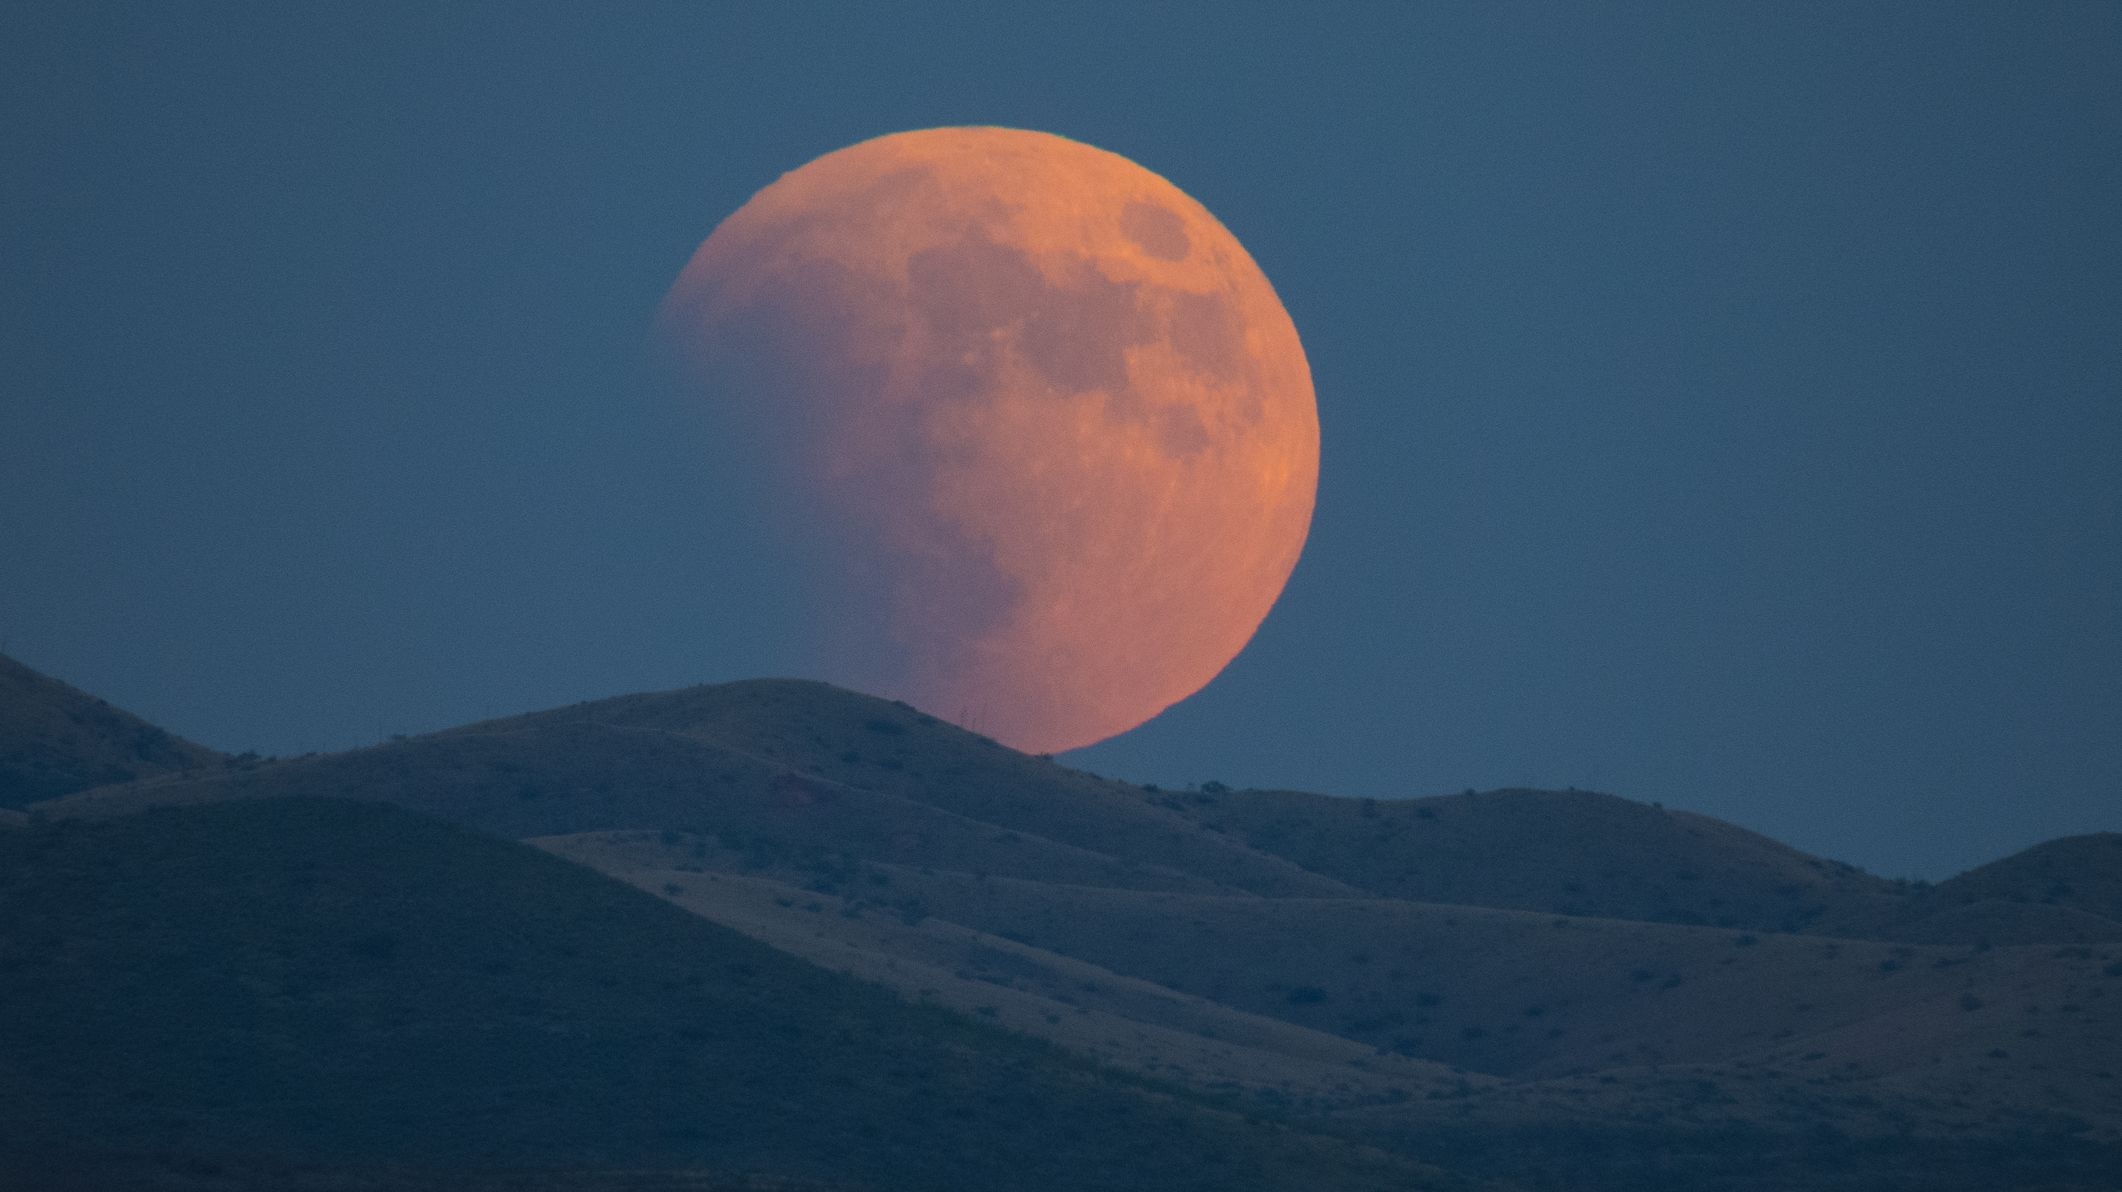 Don't Miss Next Week's Incredibly Rare 'Super Blue Blood Moon Eclipse' - Mental Floss